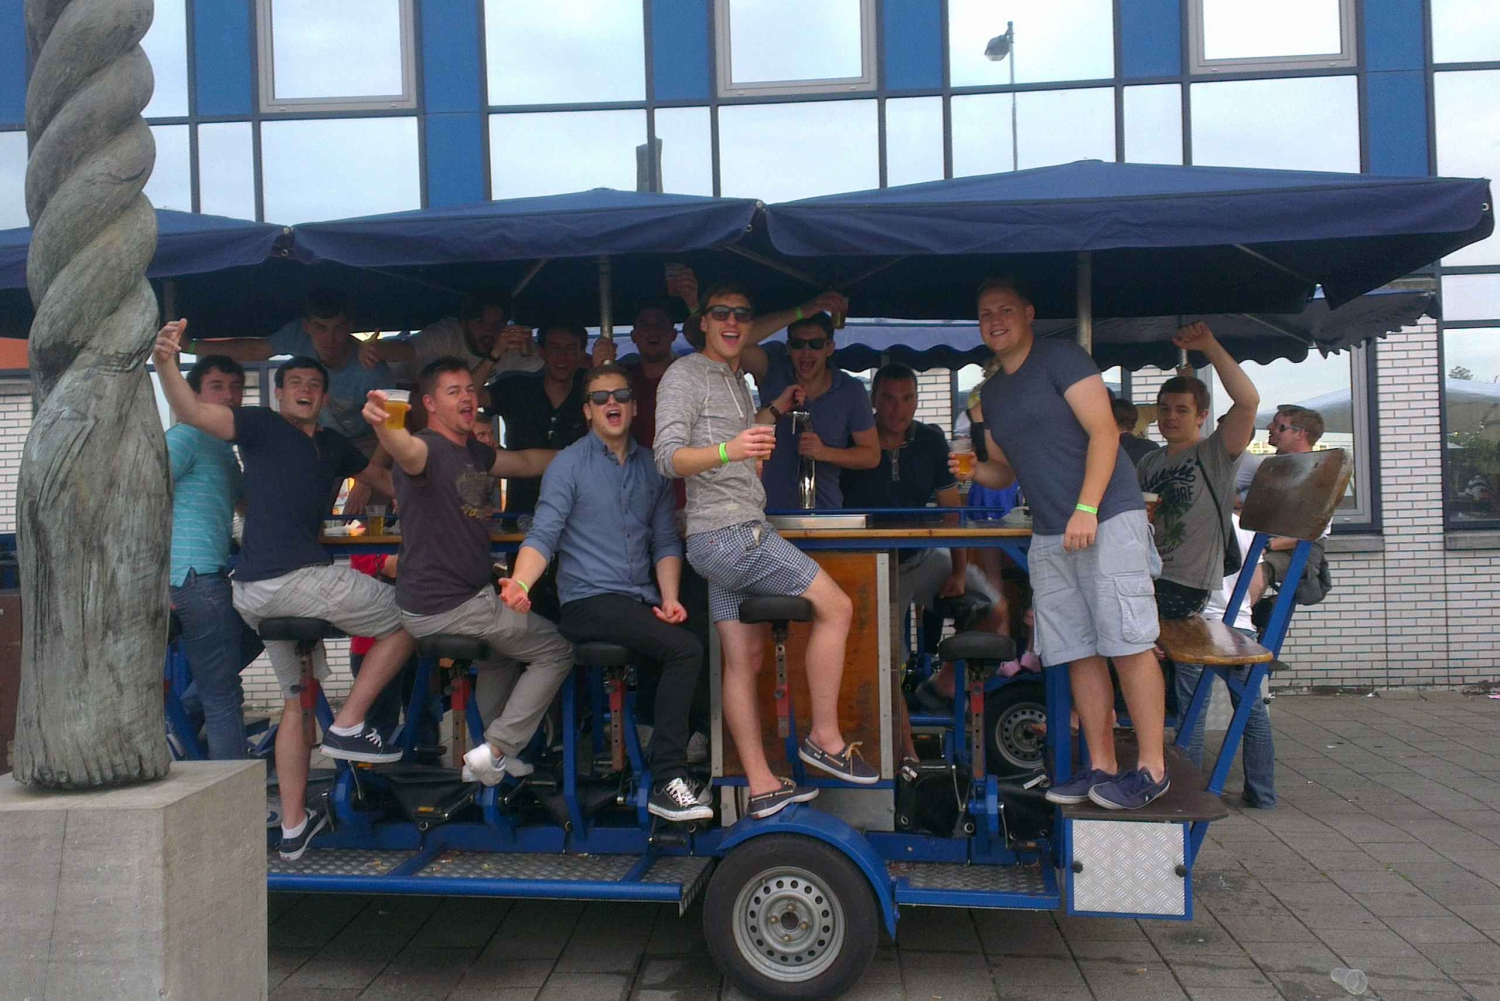 Share-a-Beer-Bike Experience